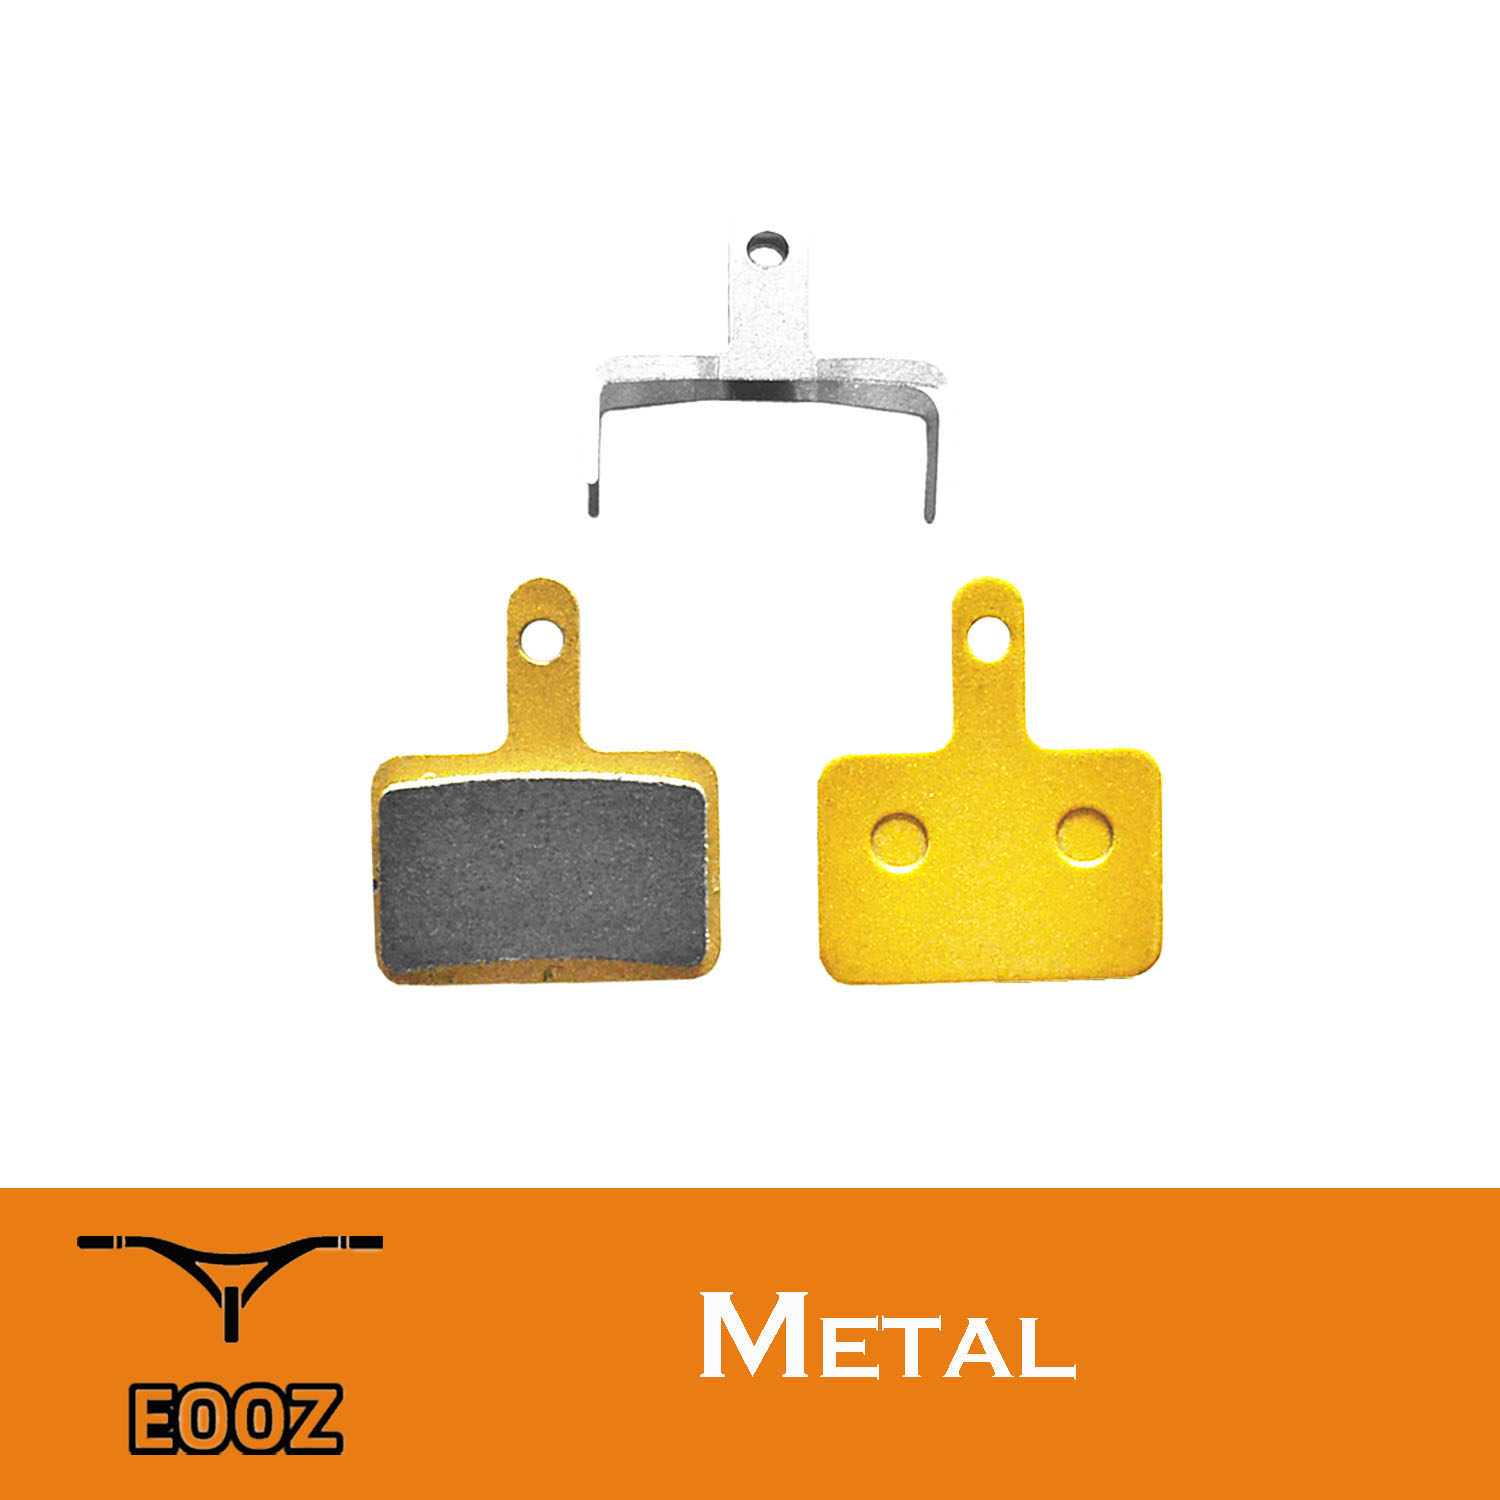 2 Pairs Metal METALLIC DISC BRAKE PADS for SHIMANO B01S Deore M515,M525